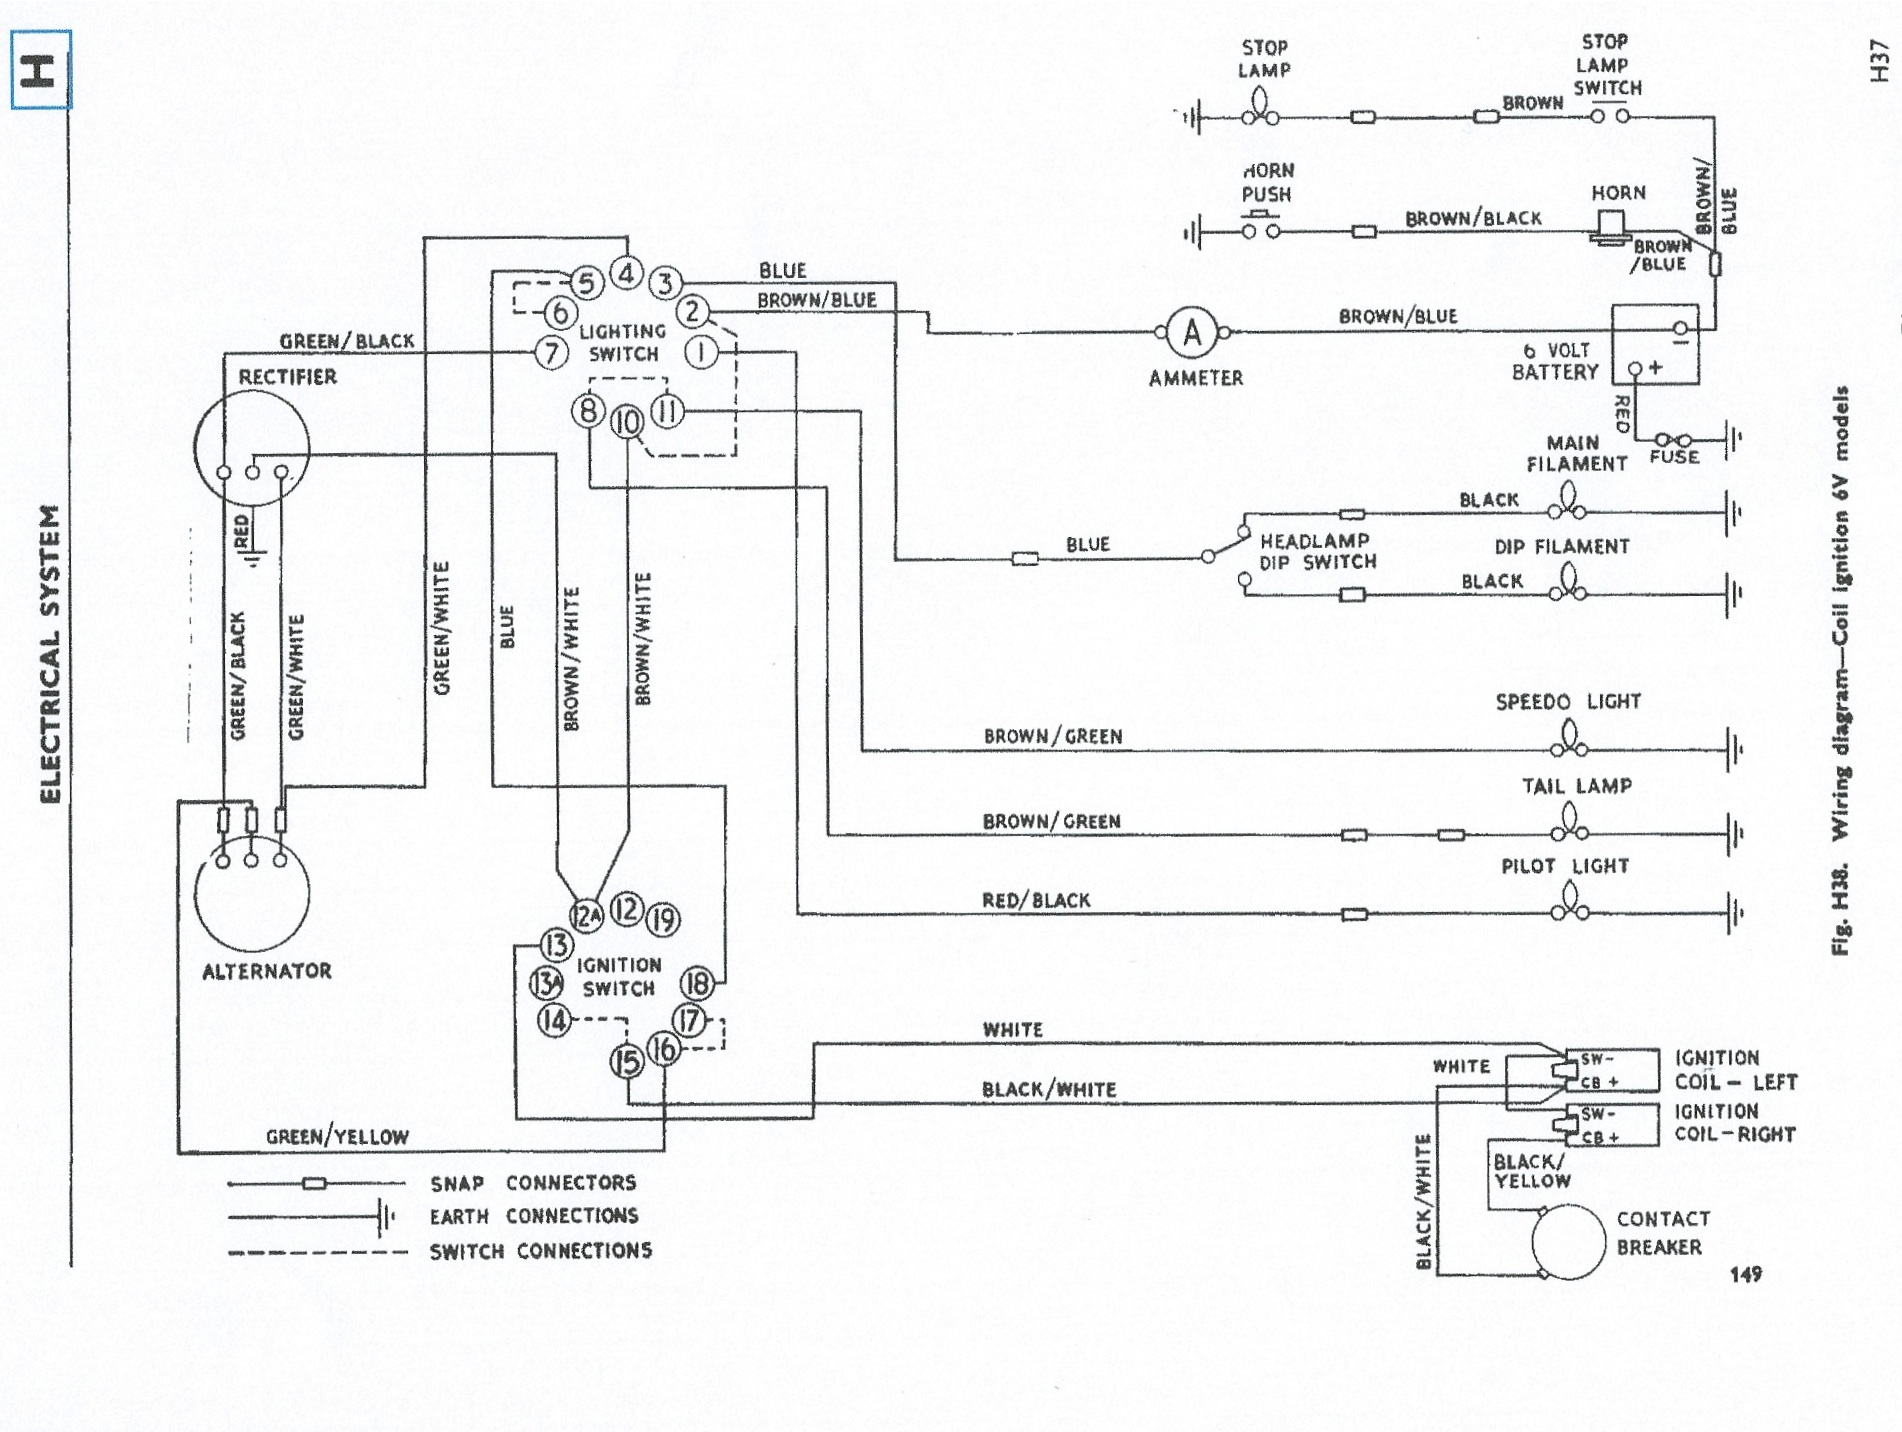 Triumph 650 Wiring Diagram Ipocartercouk \u2022rhipocartercouk: Triumph Tiger Wiring Diagram At Gmaili.net